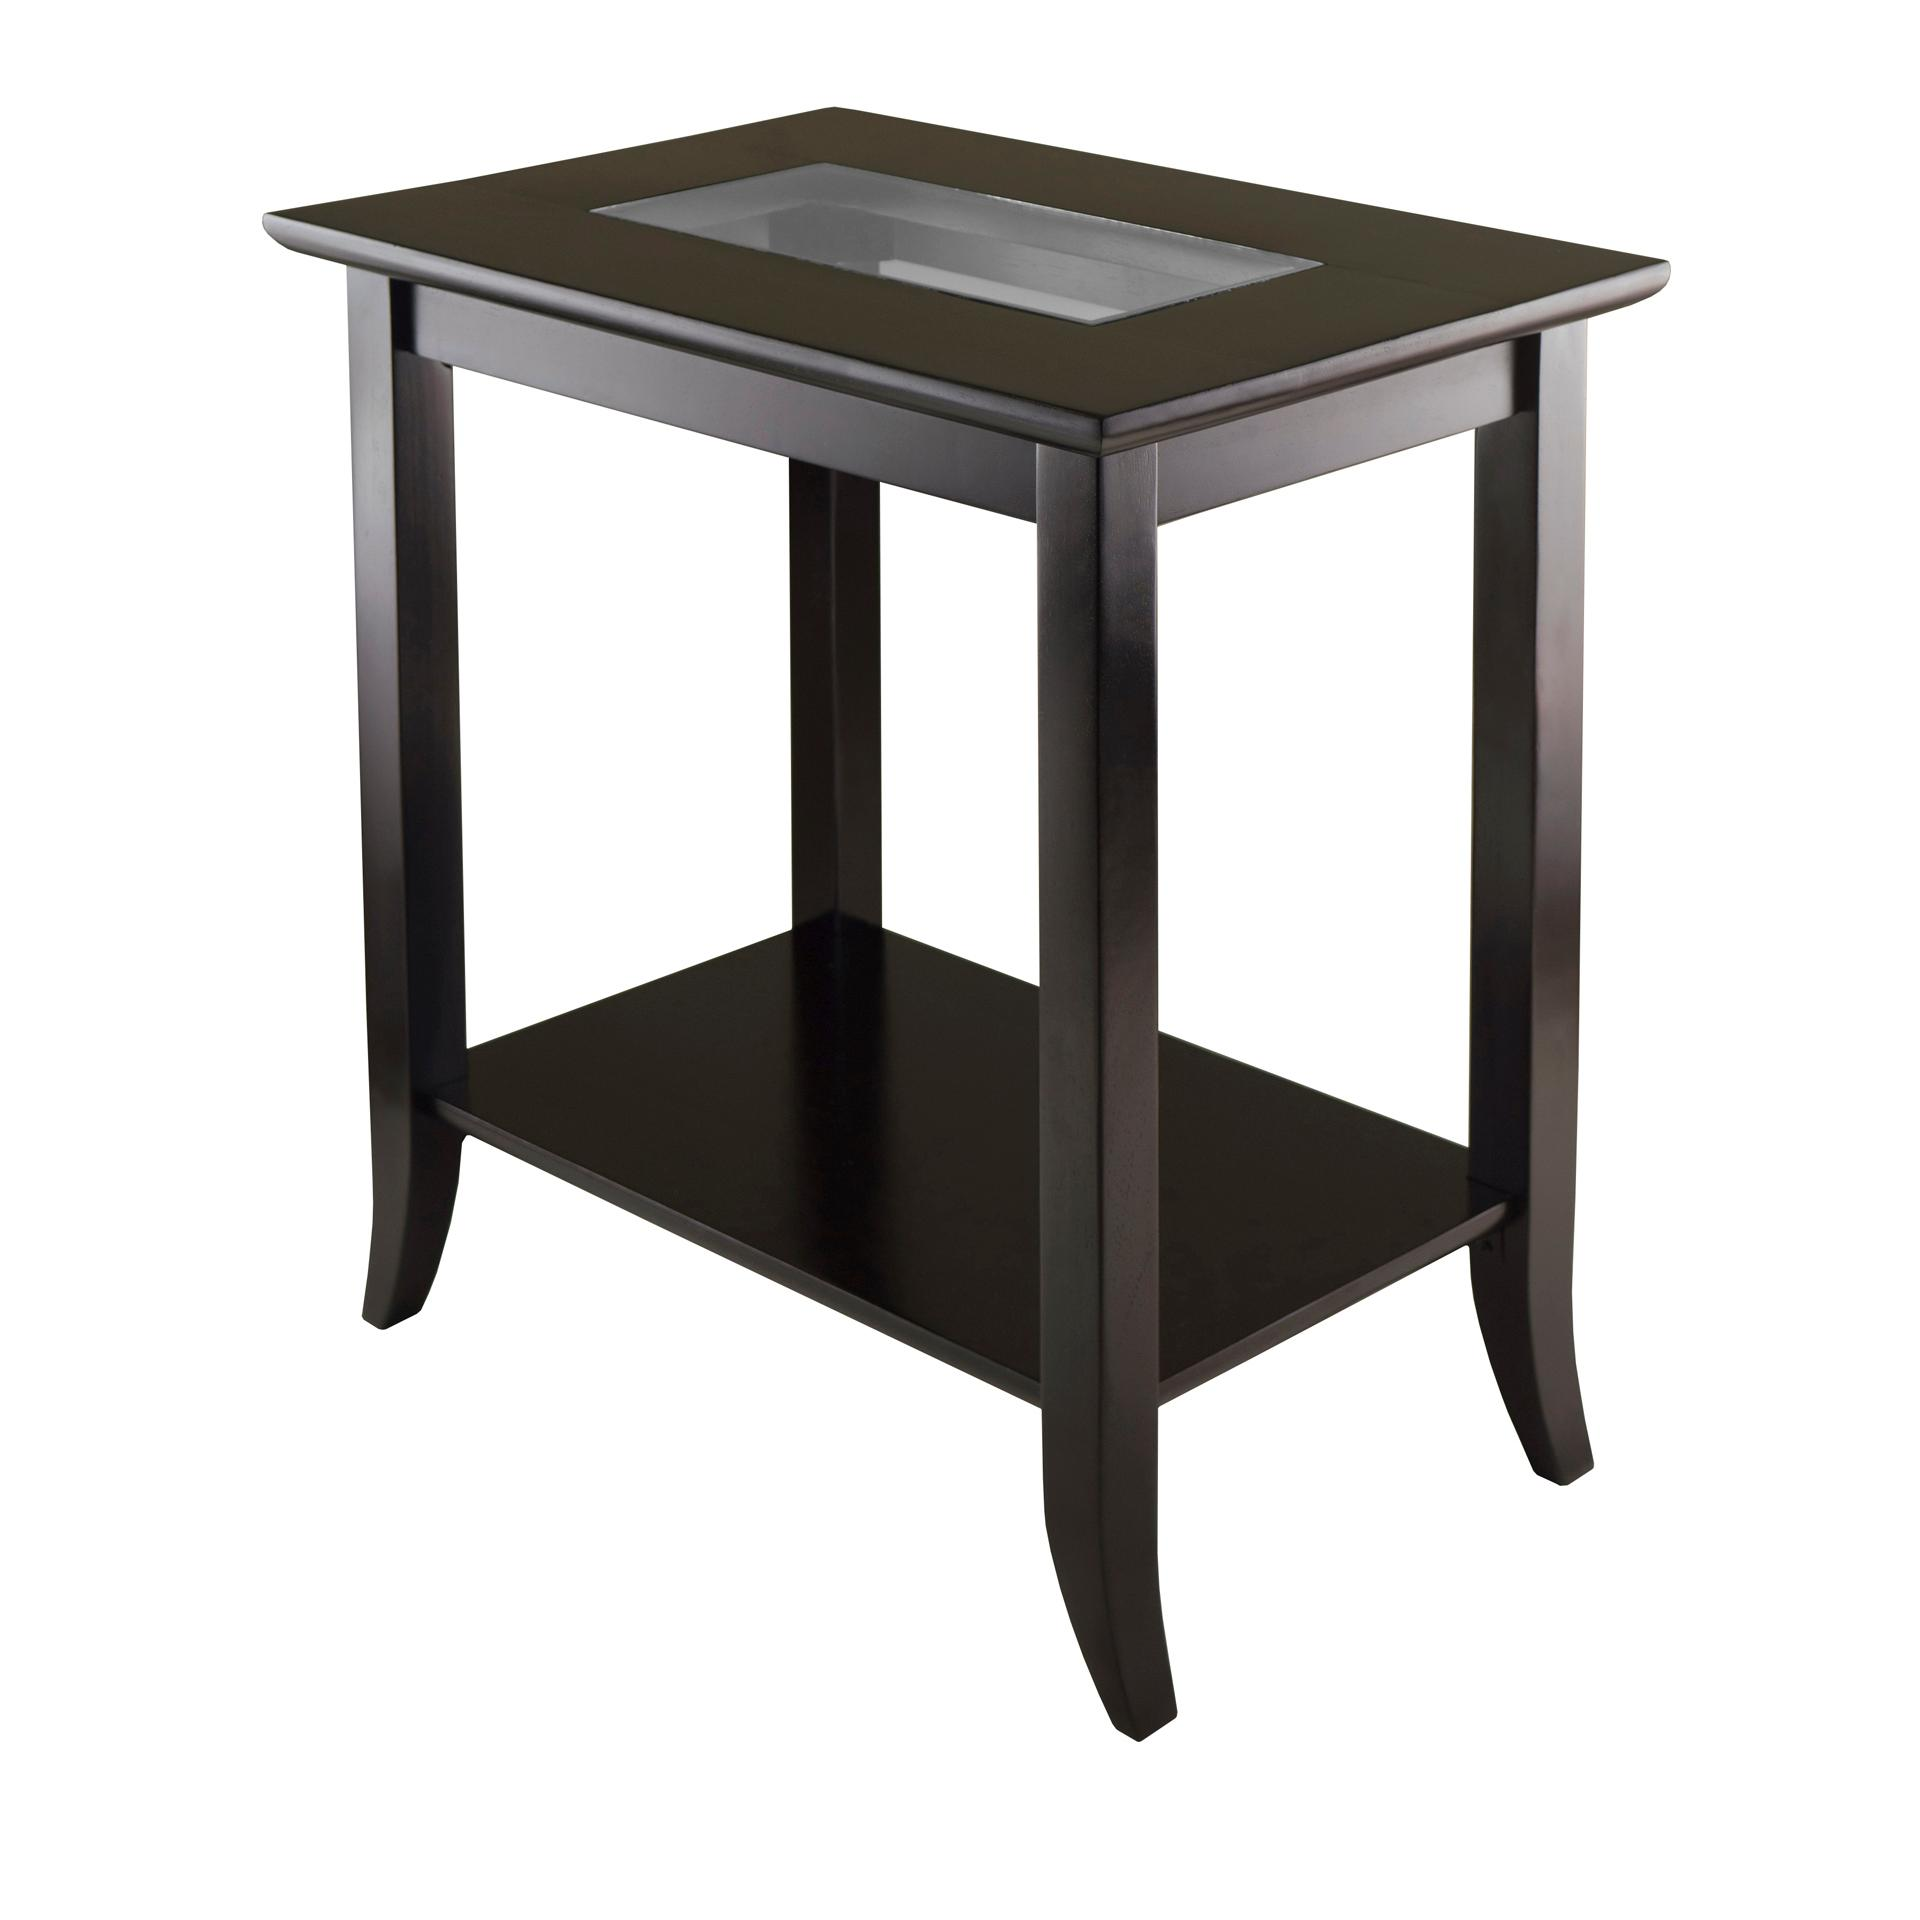 winsome wood genoa rectangular end table with glass top and shelf from the manufacturer inside dog kennels used office furniture north shore universal moderne muse best lazy boy